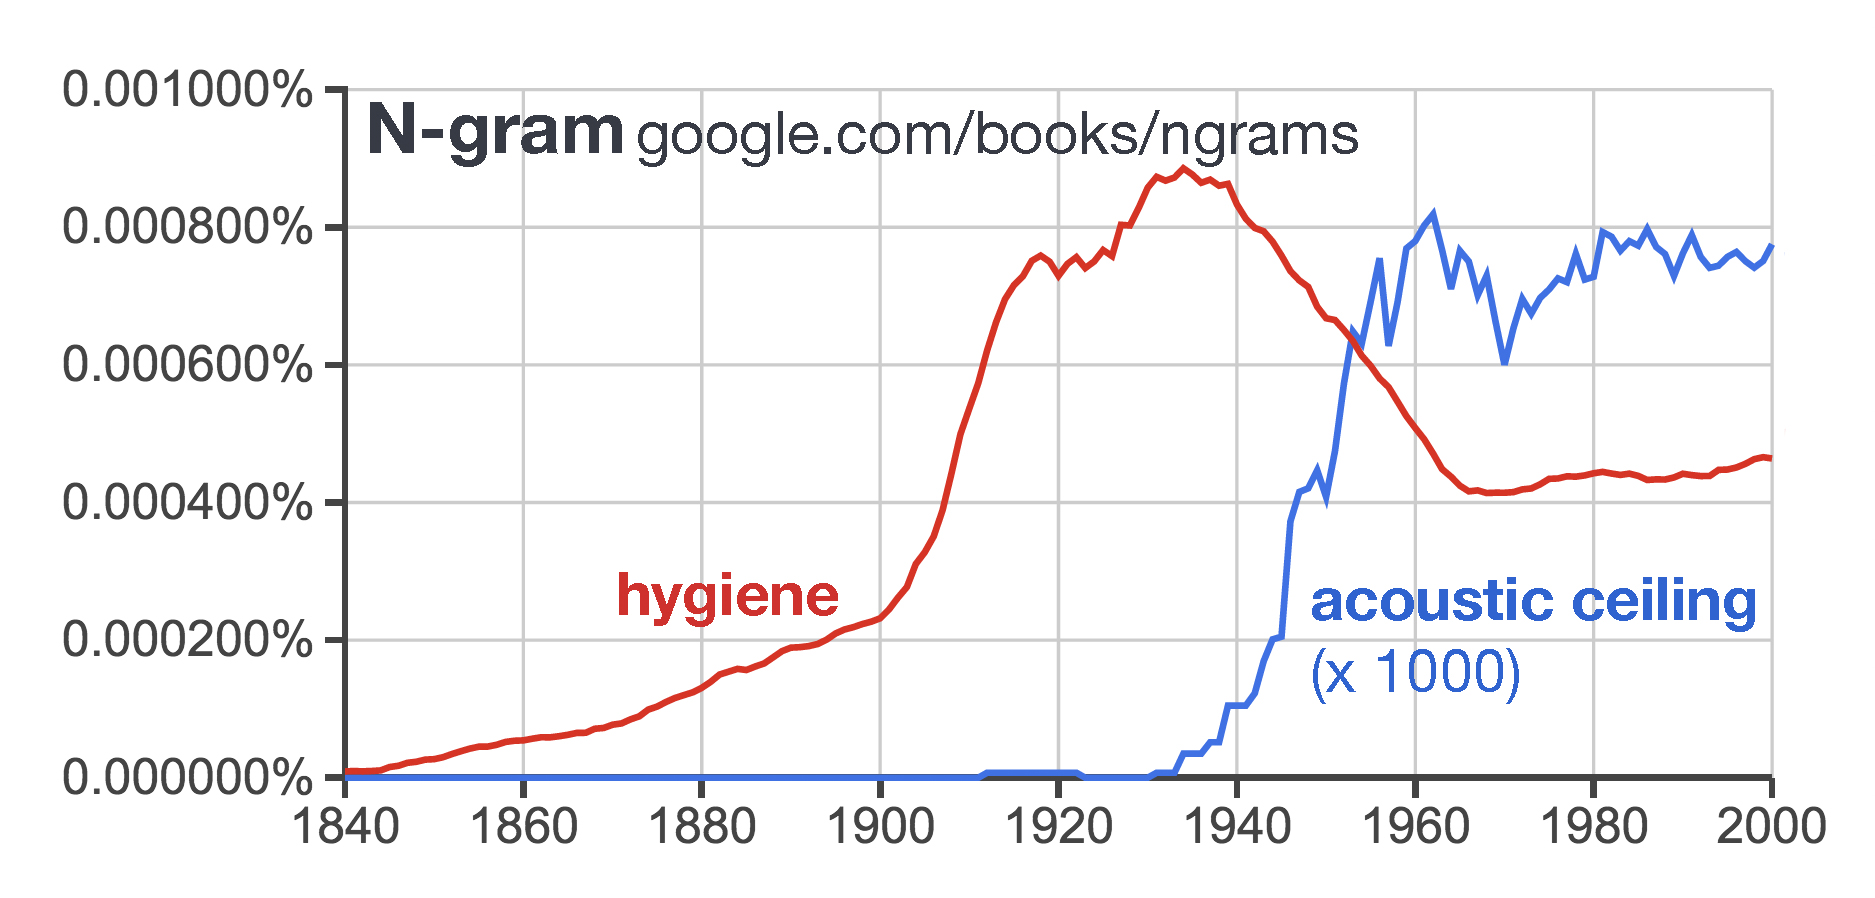 An n-gram of hygiene.